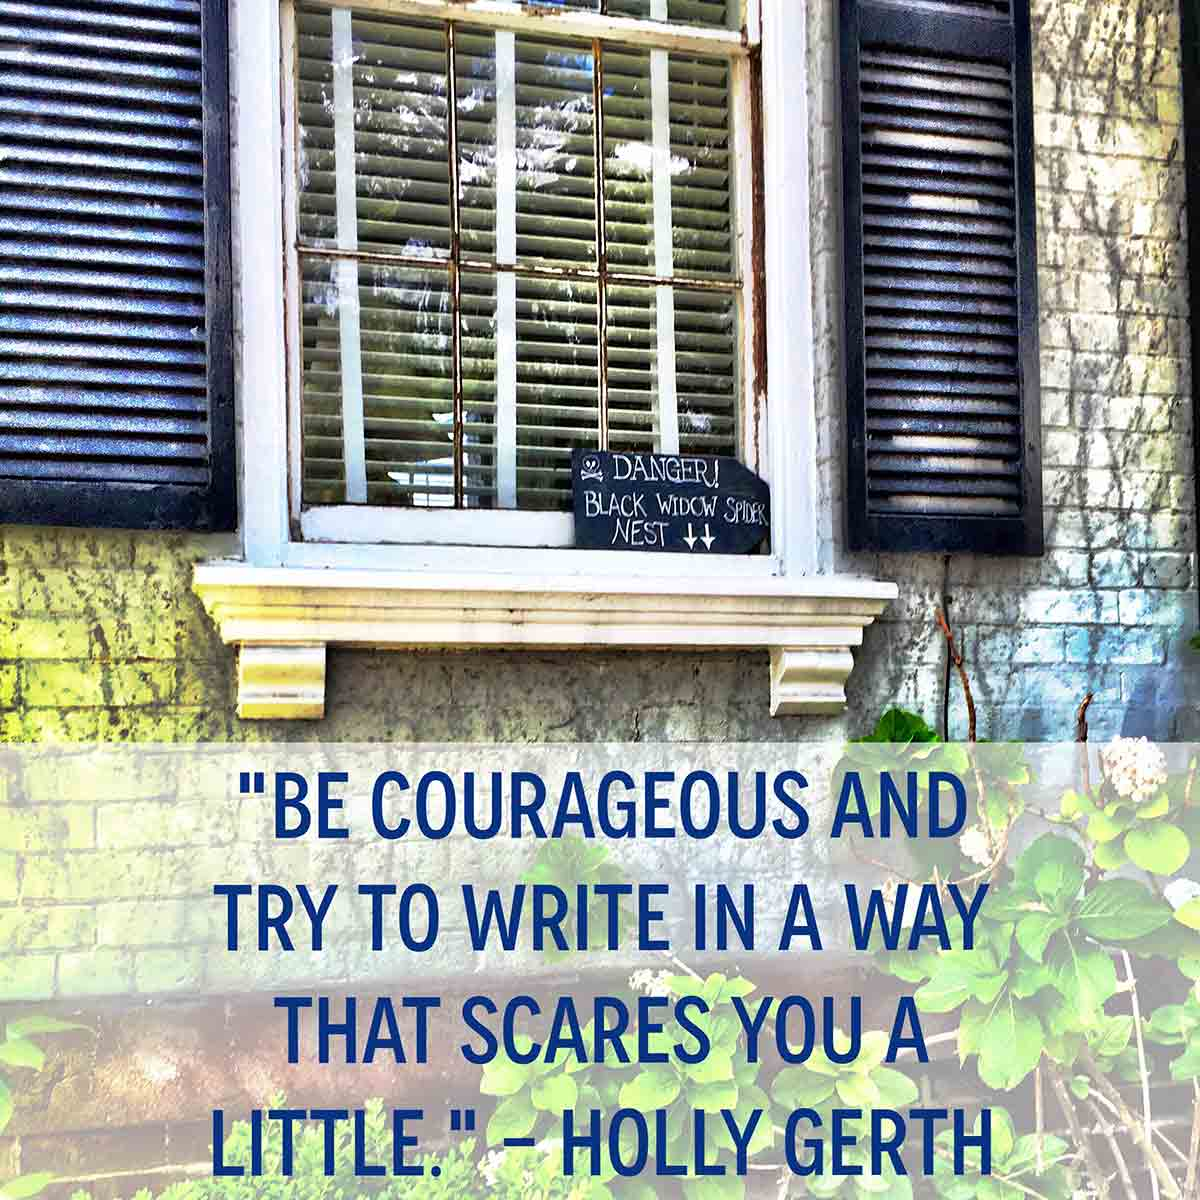 be courageous and try to write in a way that scares you a little